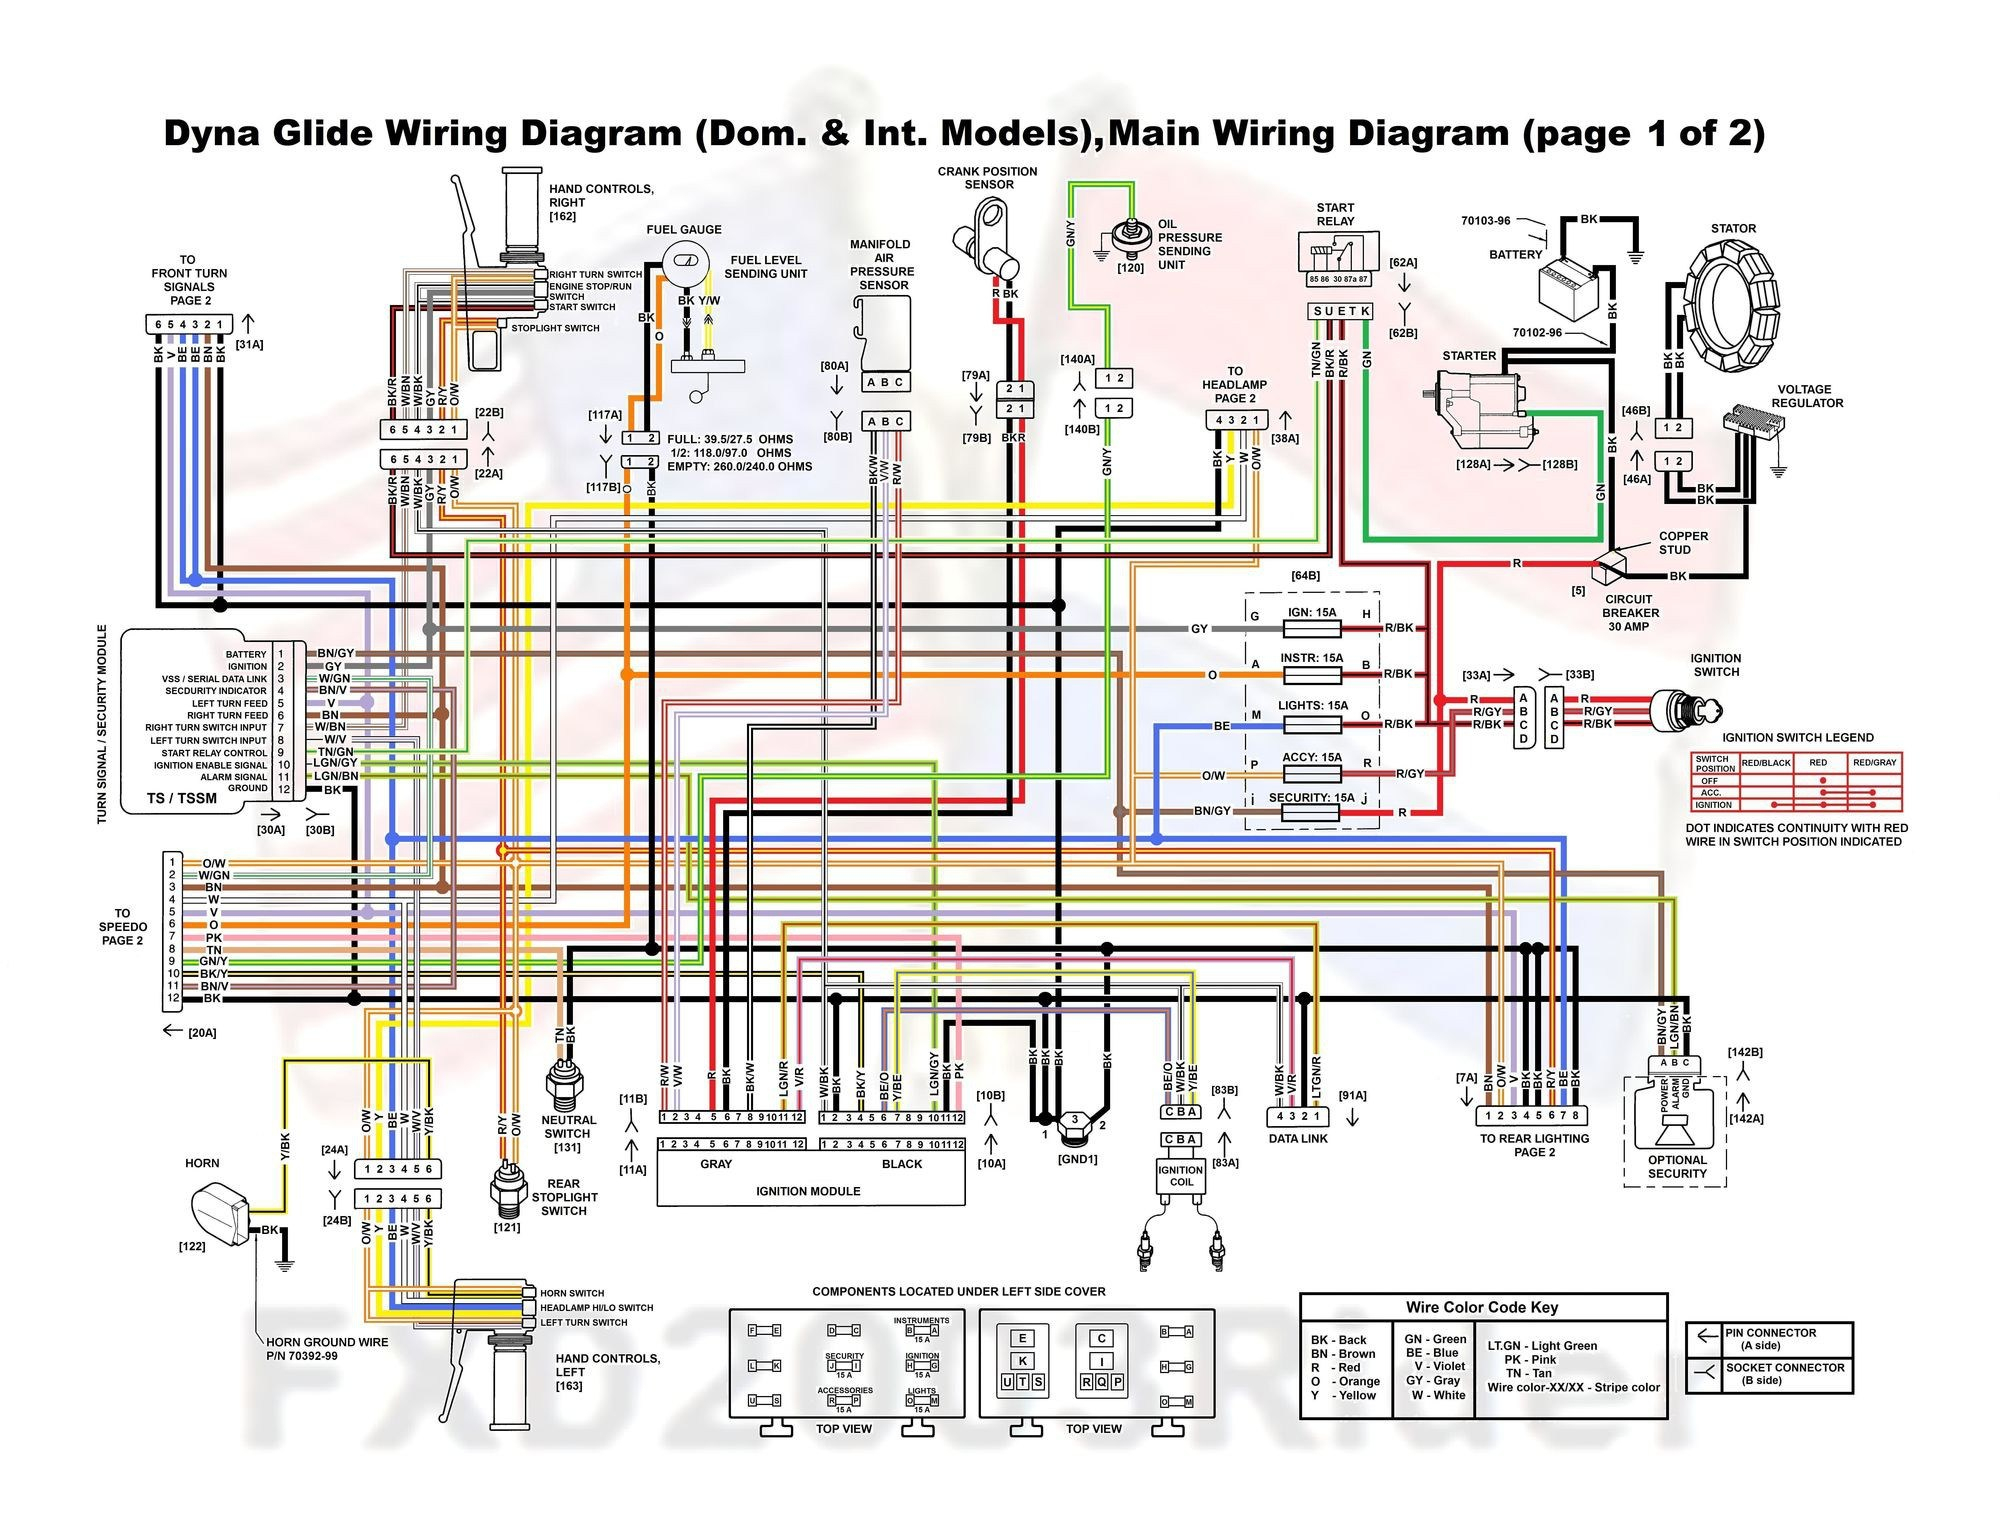 1965 Harley Davidson Wiring Diagram | Wiring Diagram - Harley Davidson Wiring Diagram Manual